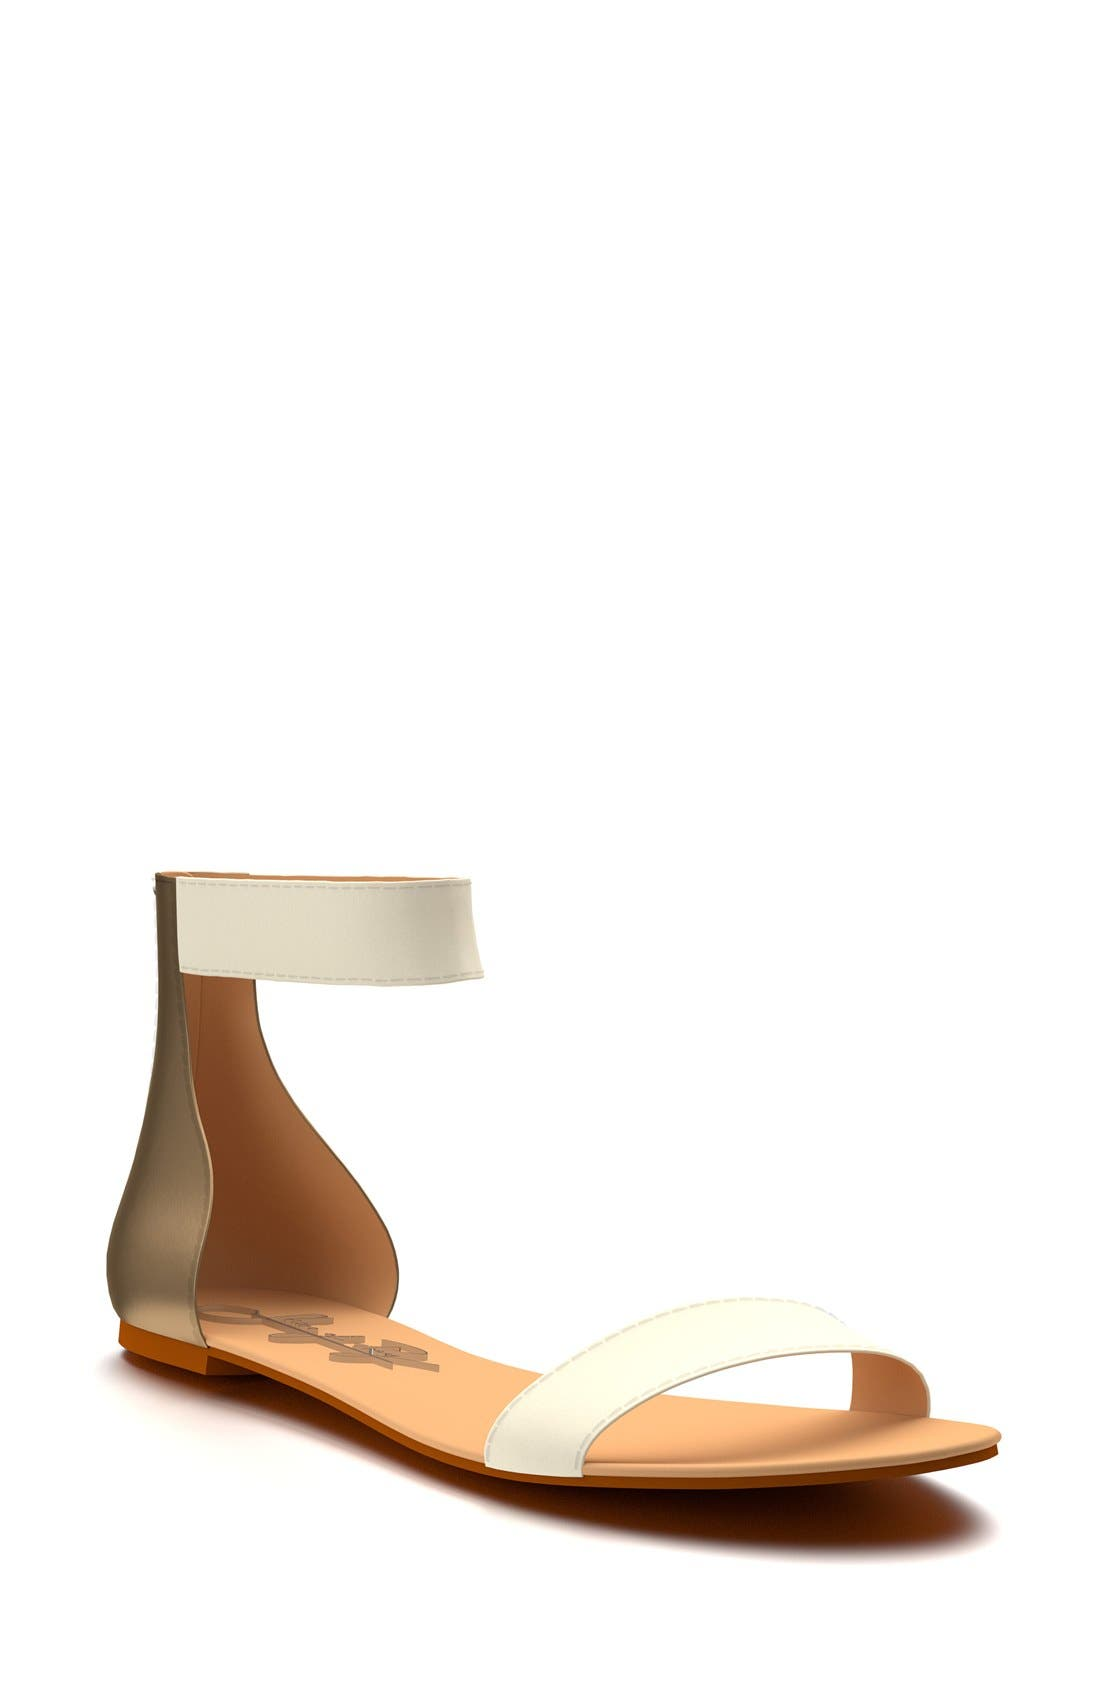 Alternate Image 1 Selected - Shoes of Prey Ankle Strap Sandal (Women)